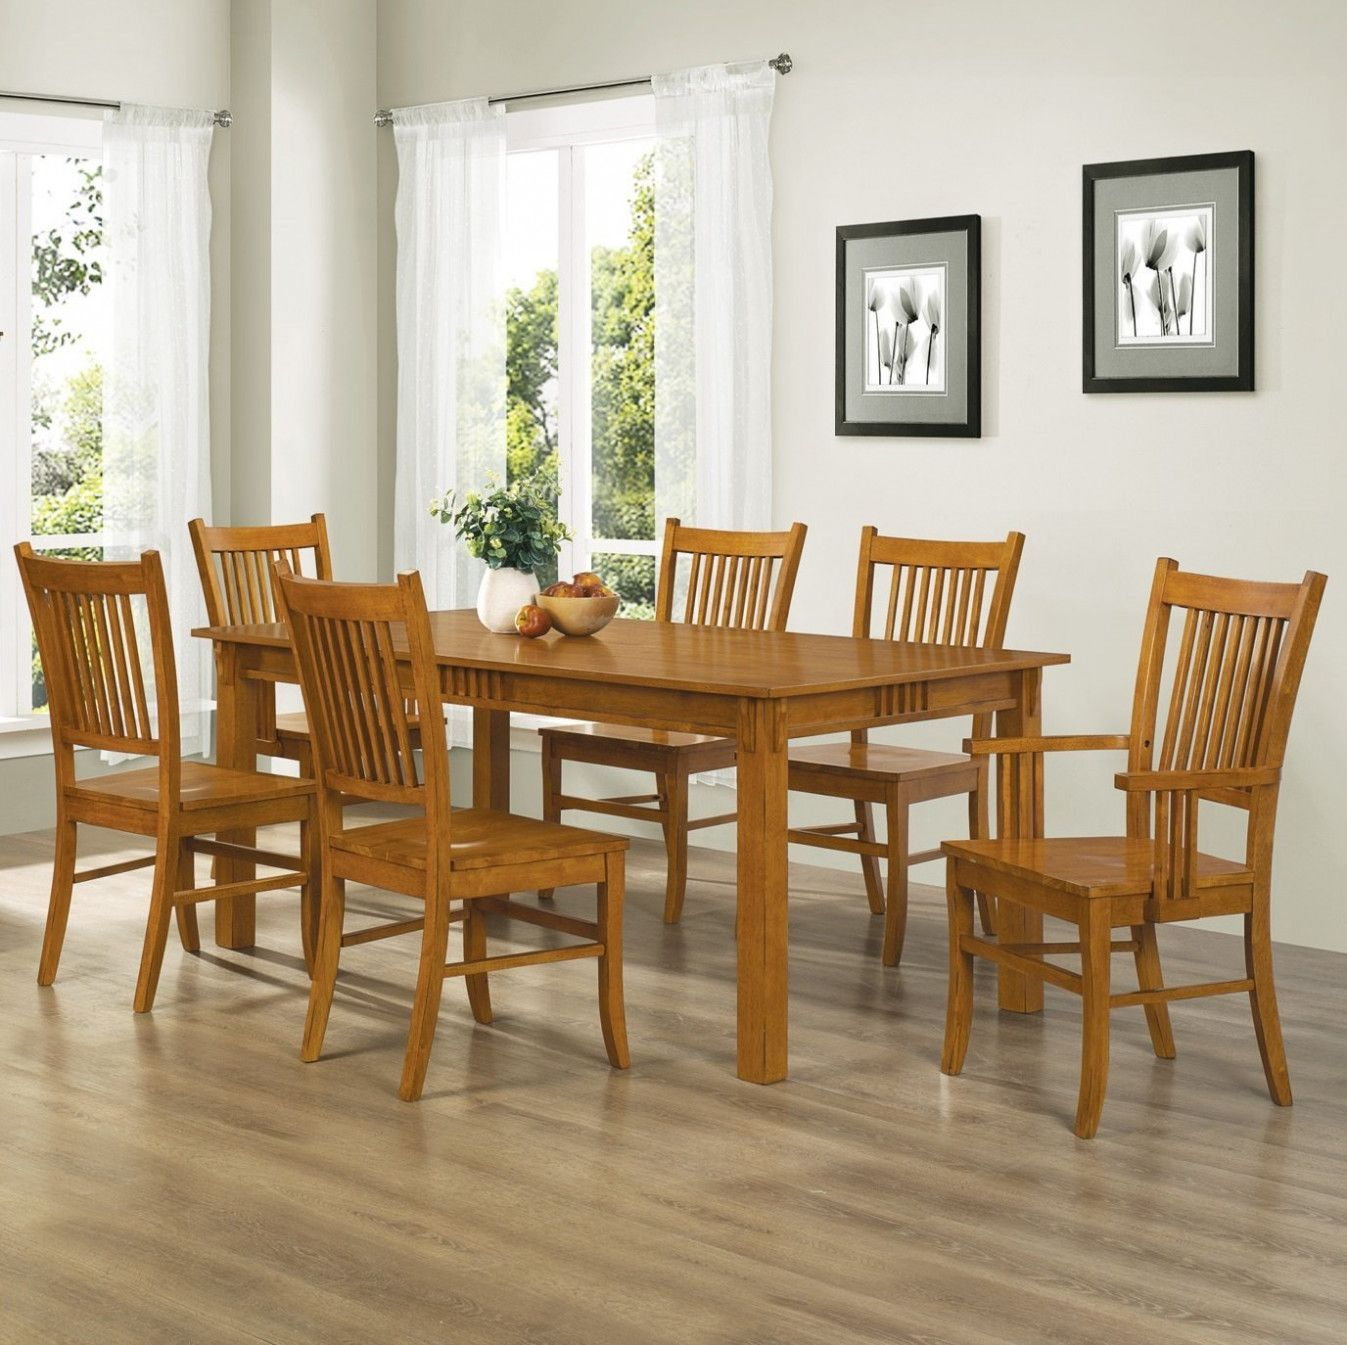 20 Styles Of Dining Room Chairs